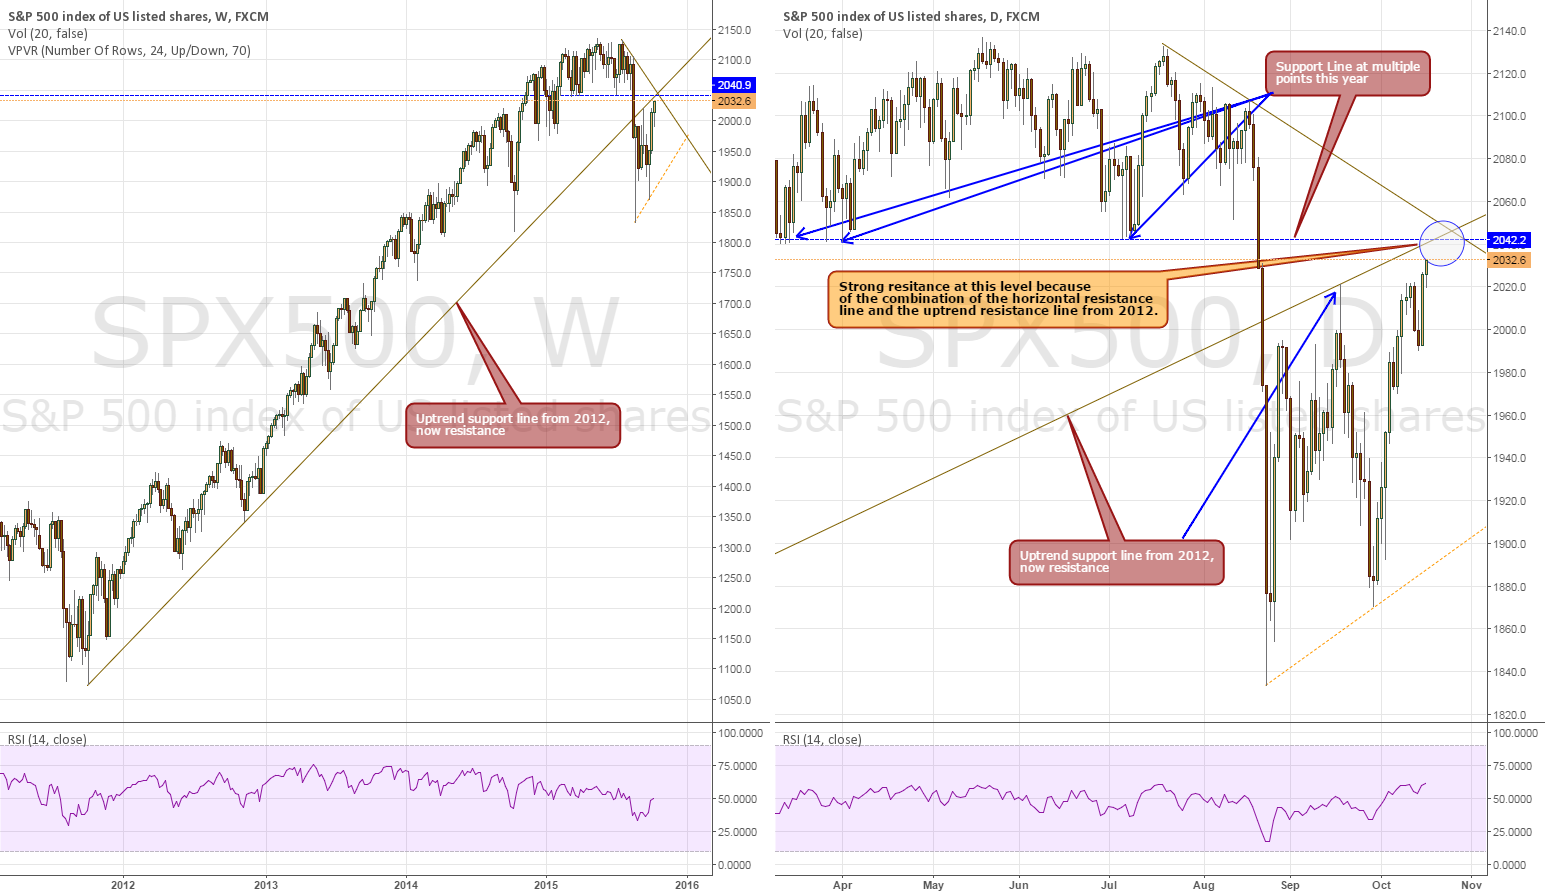 Multiple Resistances for SPX500 at Low 2040s